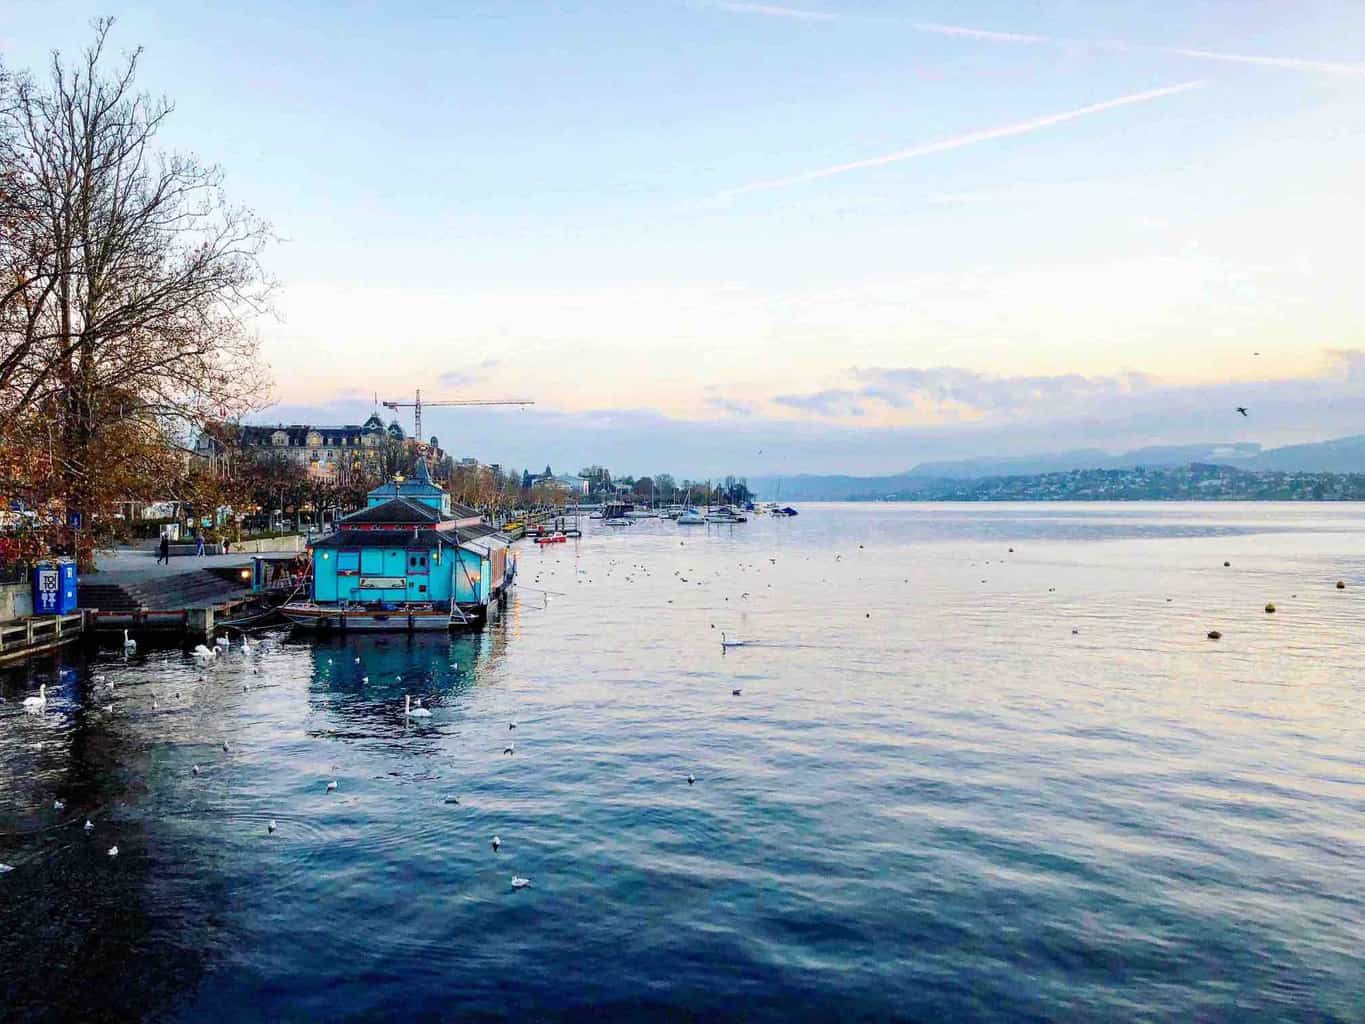 Die Herzbaracke on Lake Zurich